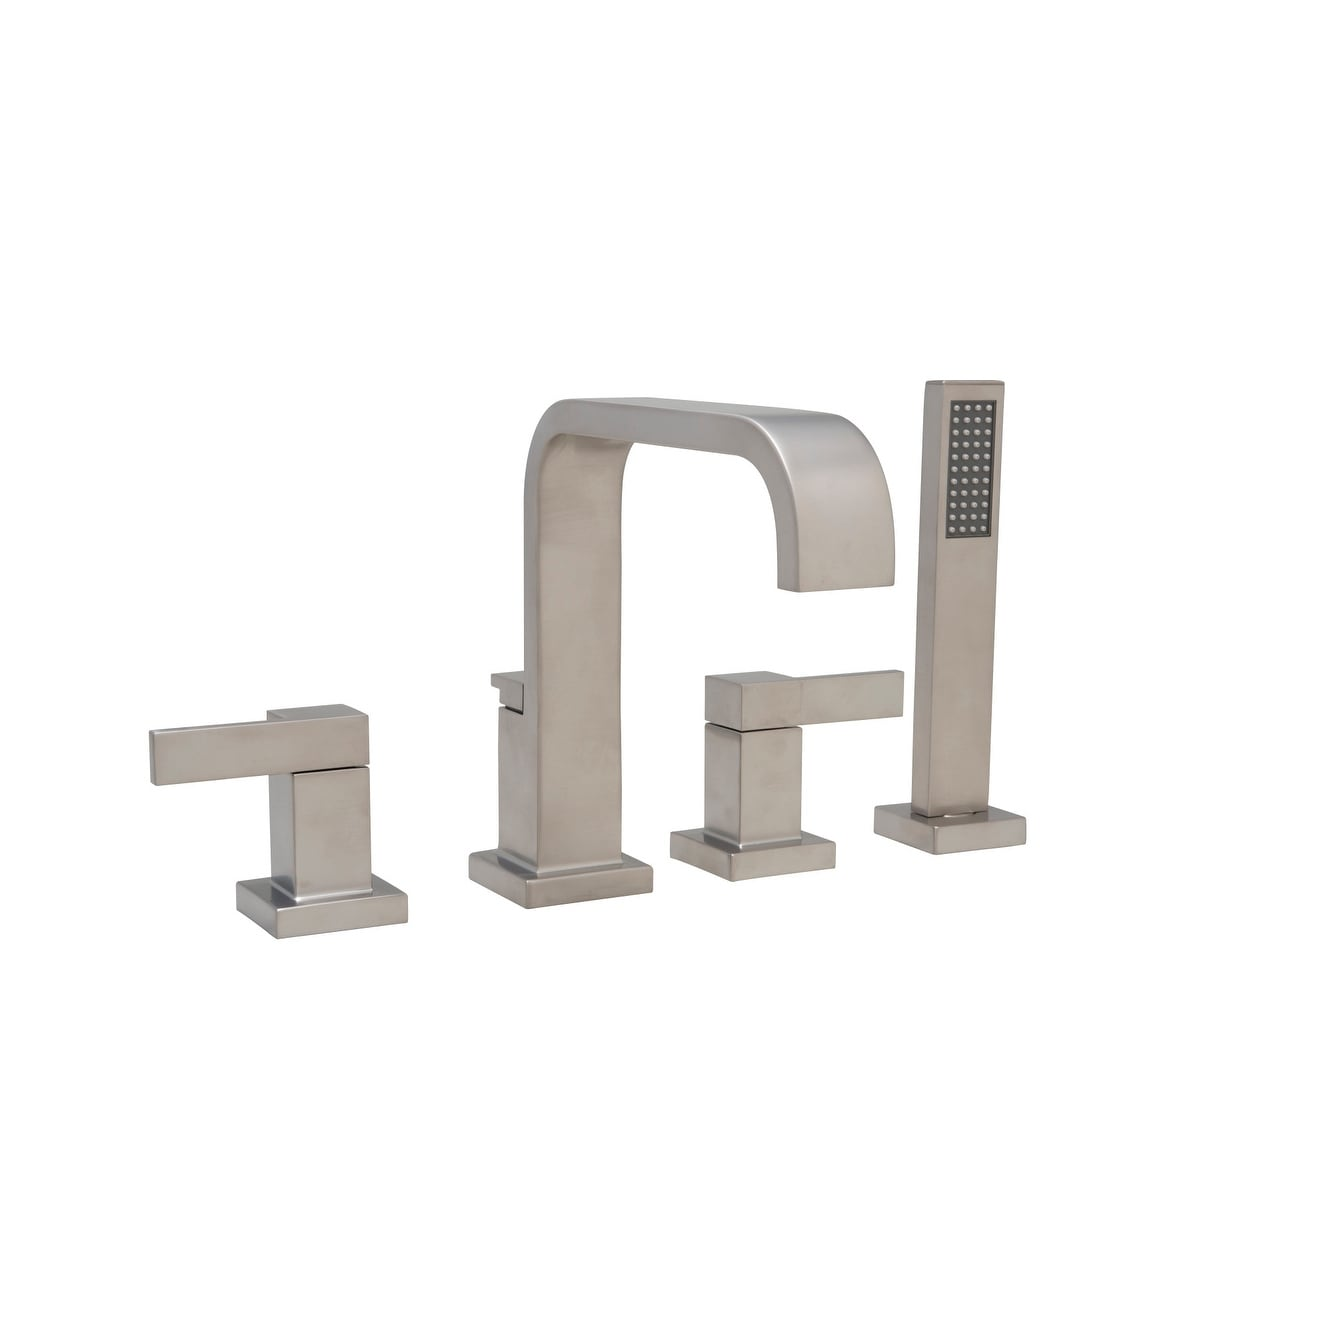 Mirabelle Mirri4rt Rigi Deck Mounted Roman Tub Faucet With Integrated Diverter And Personal Hand Shower N A